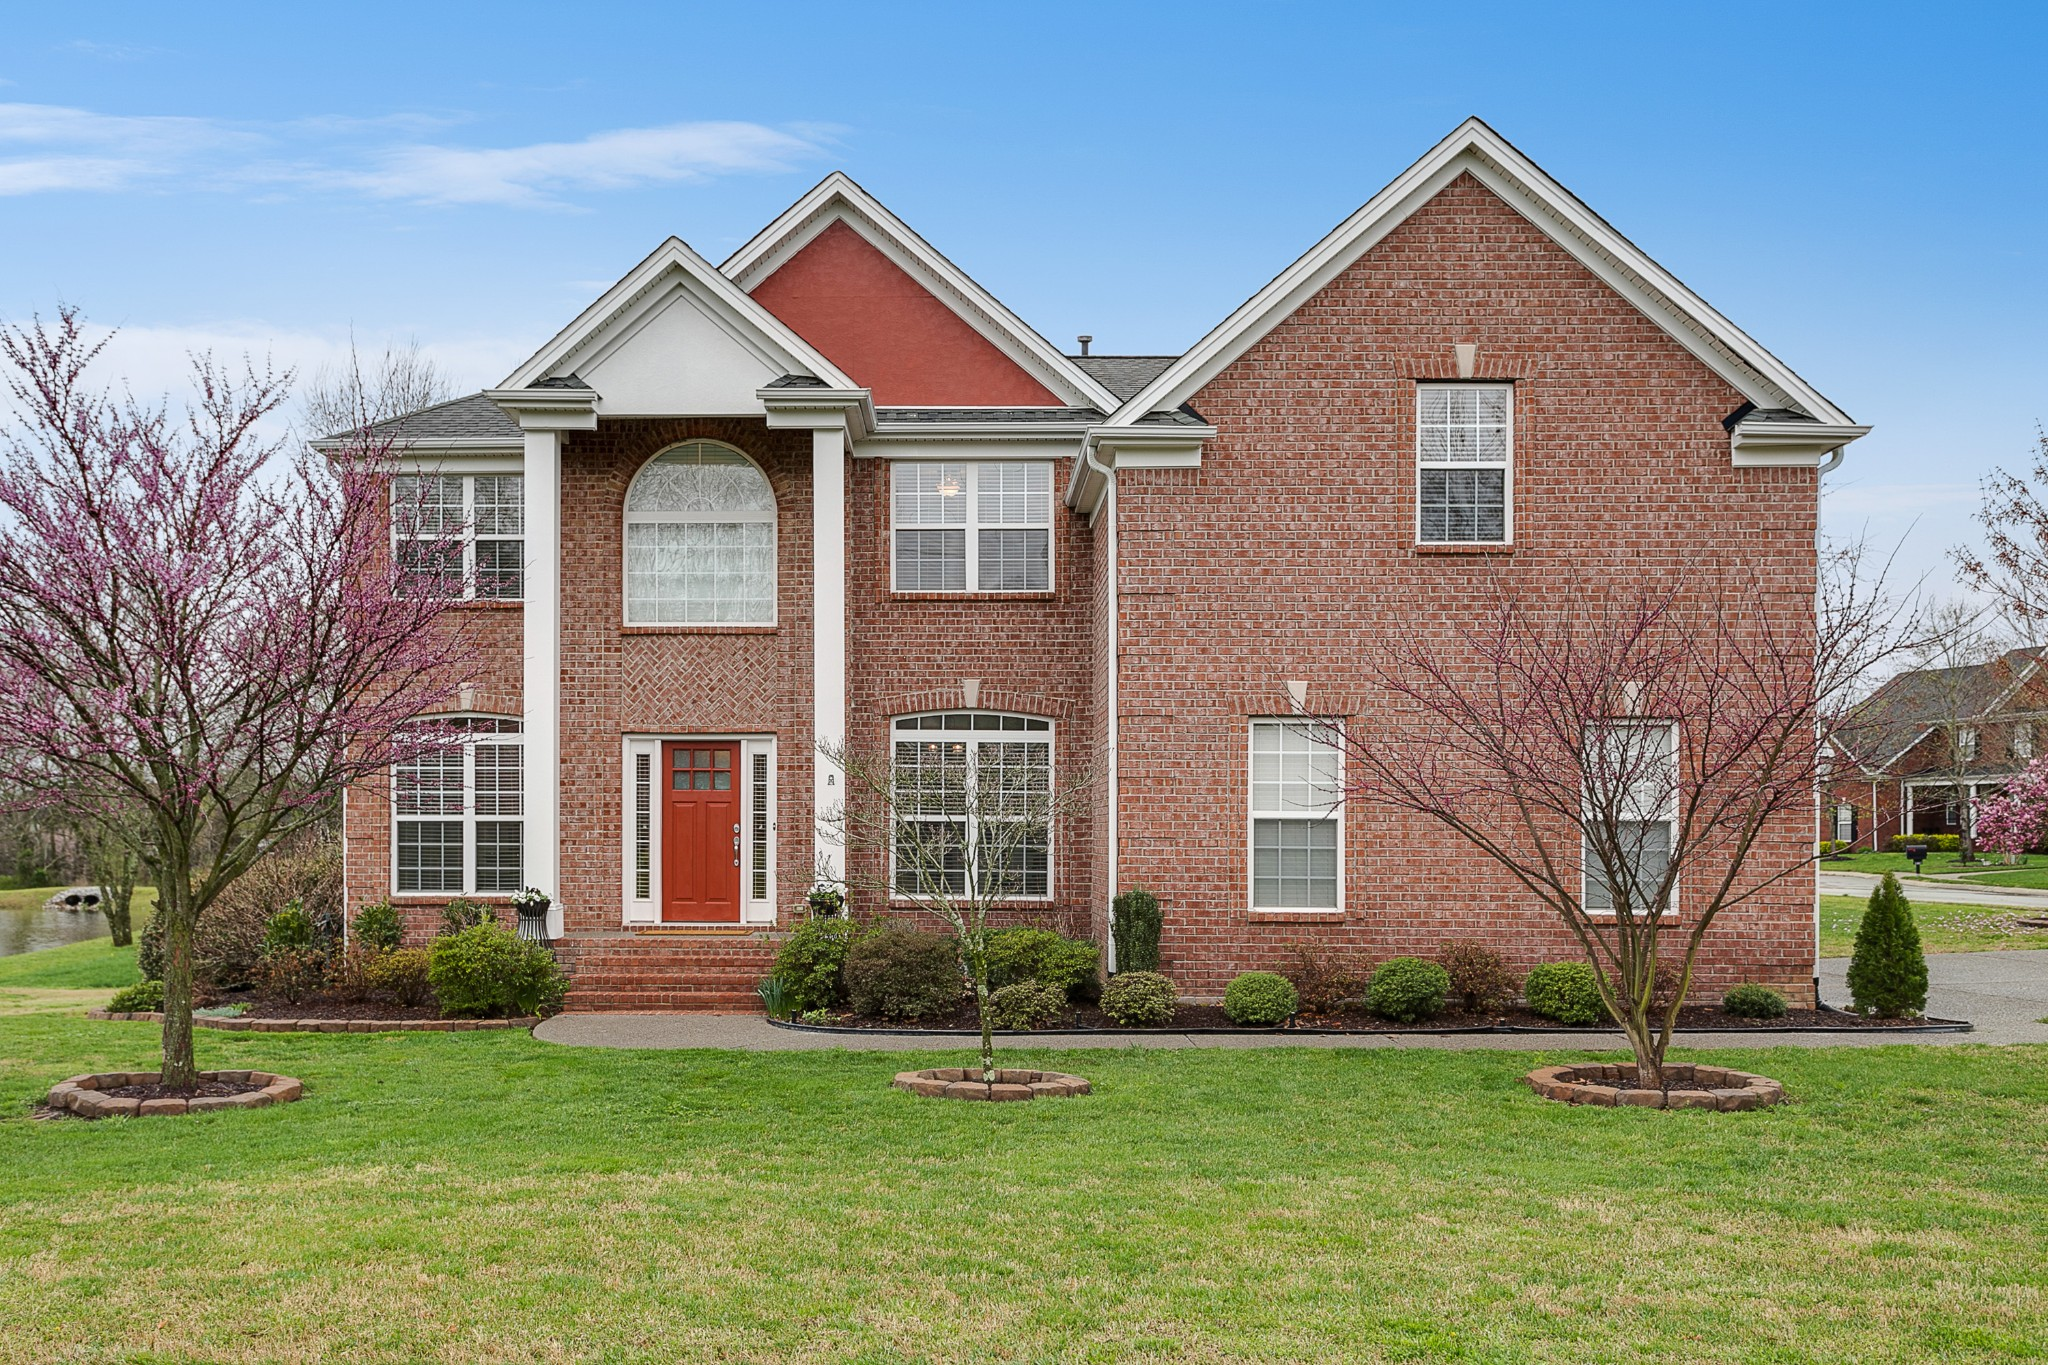 1001 Rachel Beth Ct., Spring Hill, Tennessee